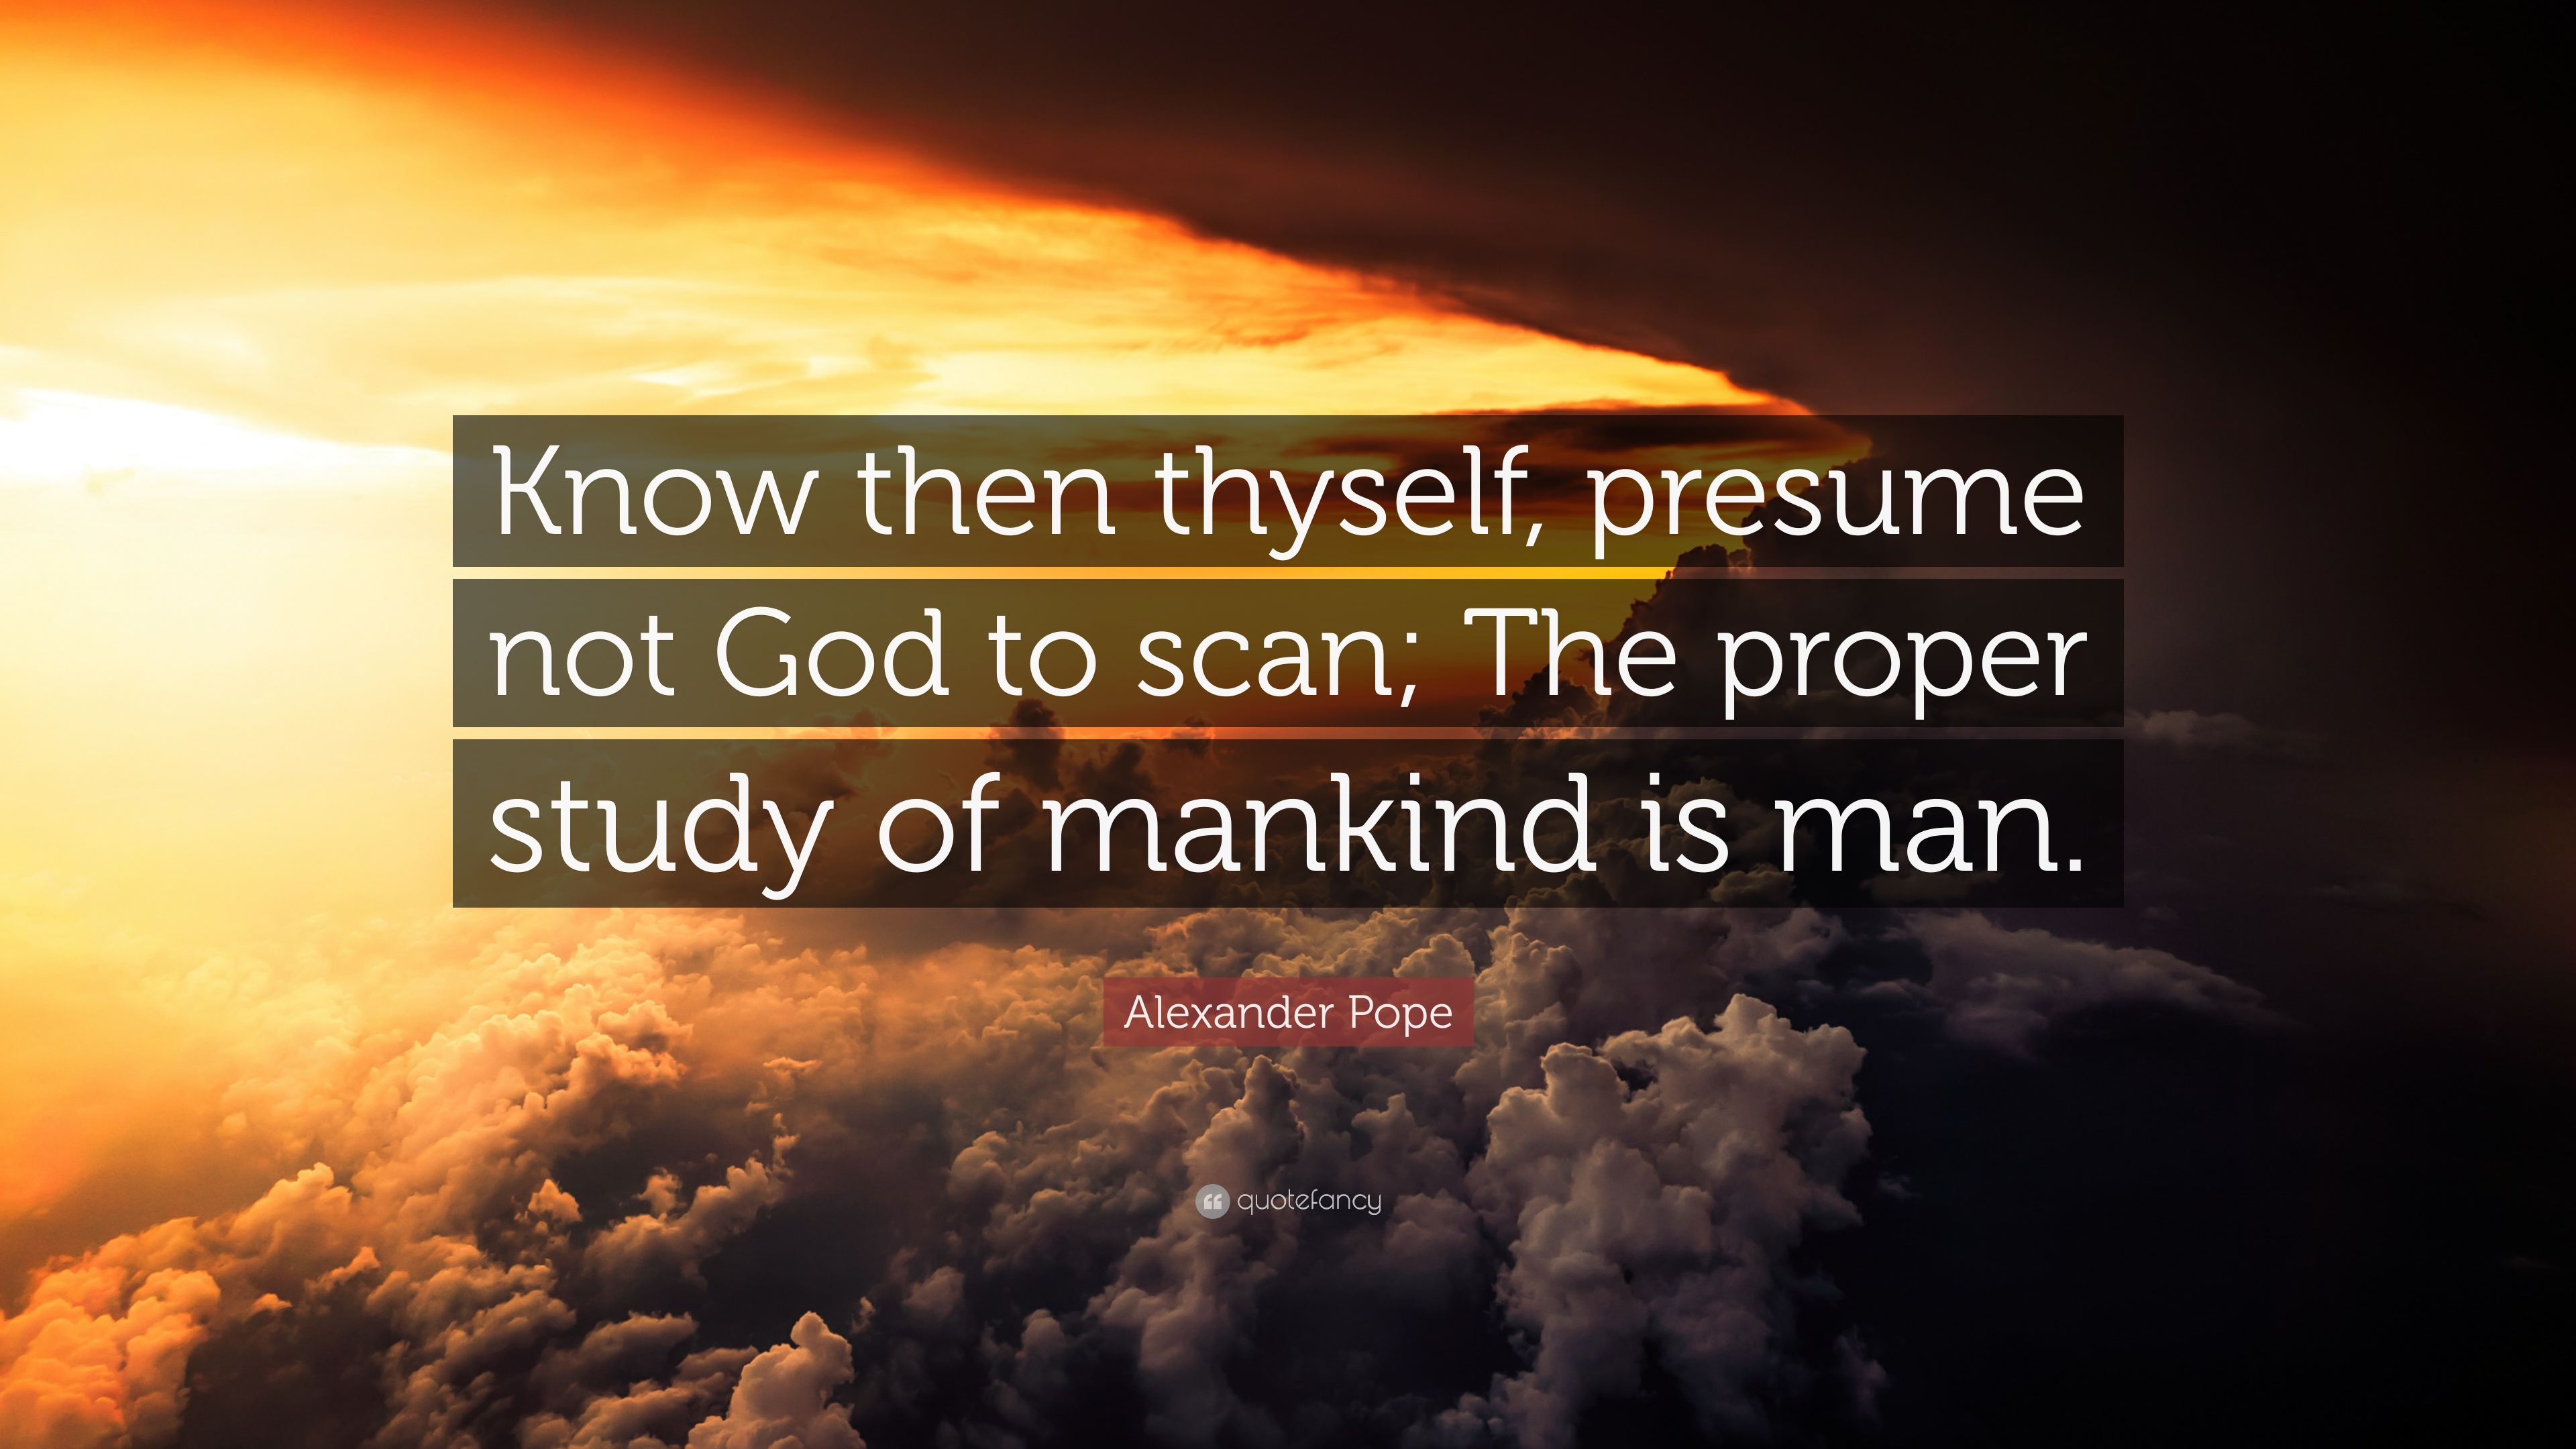 Good Alexander Pope Quote: U201cKnow Then Thyself, Presume Not God To Scan; The